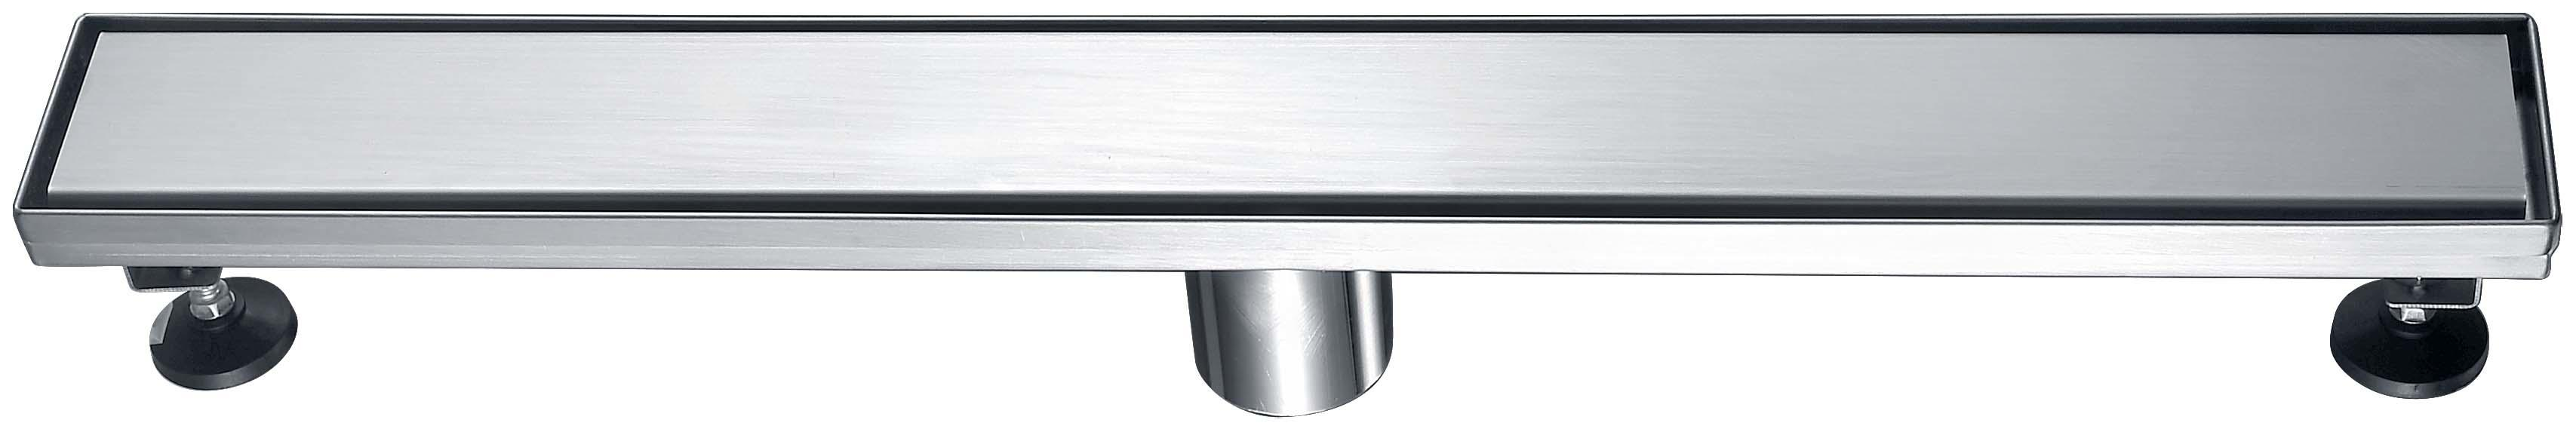 Norye trough drain with cushion pad for washrooms-1